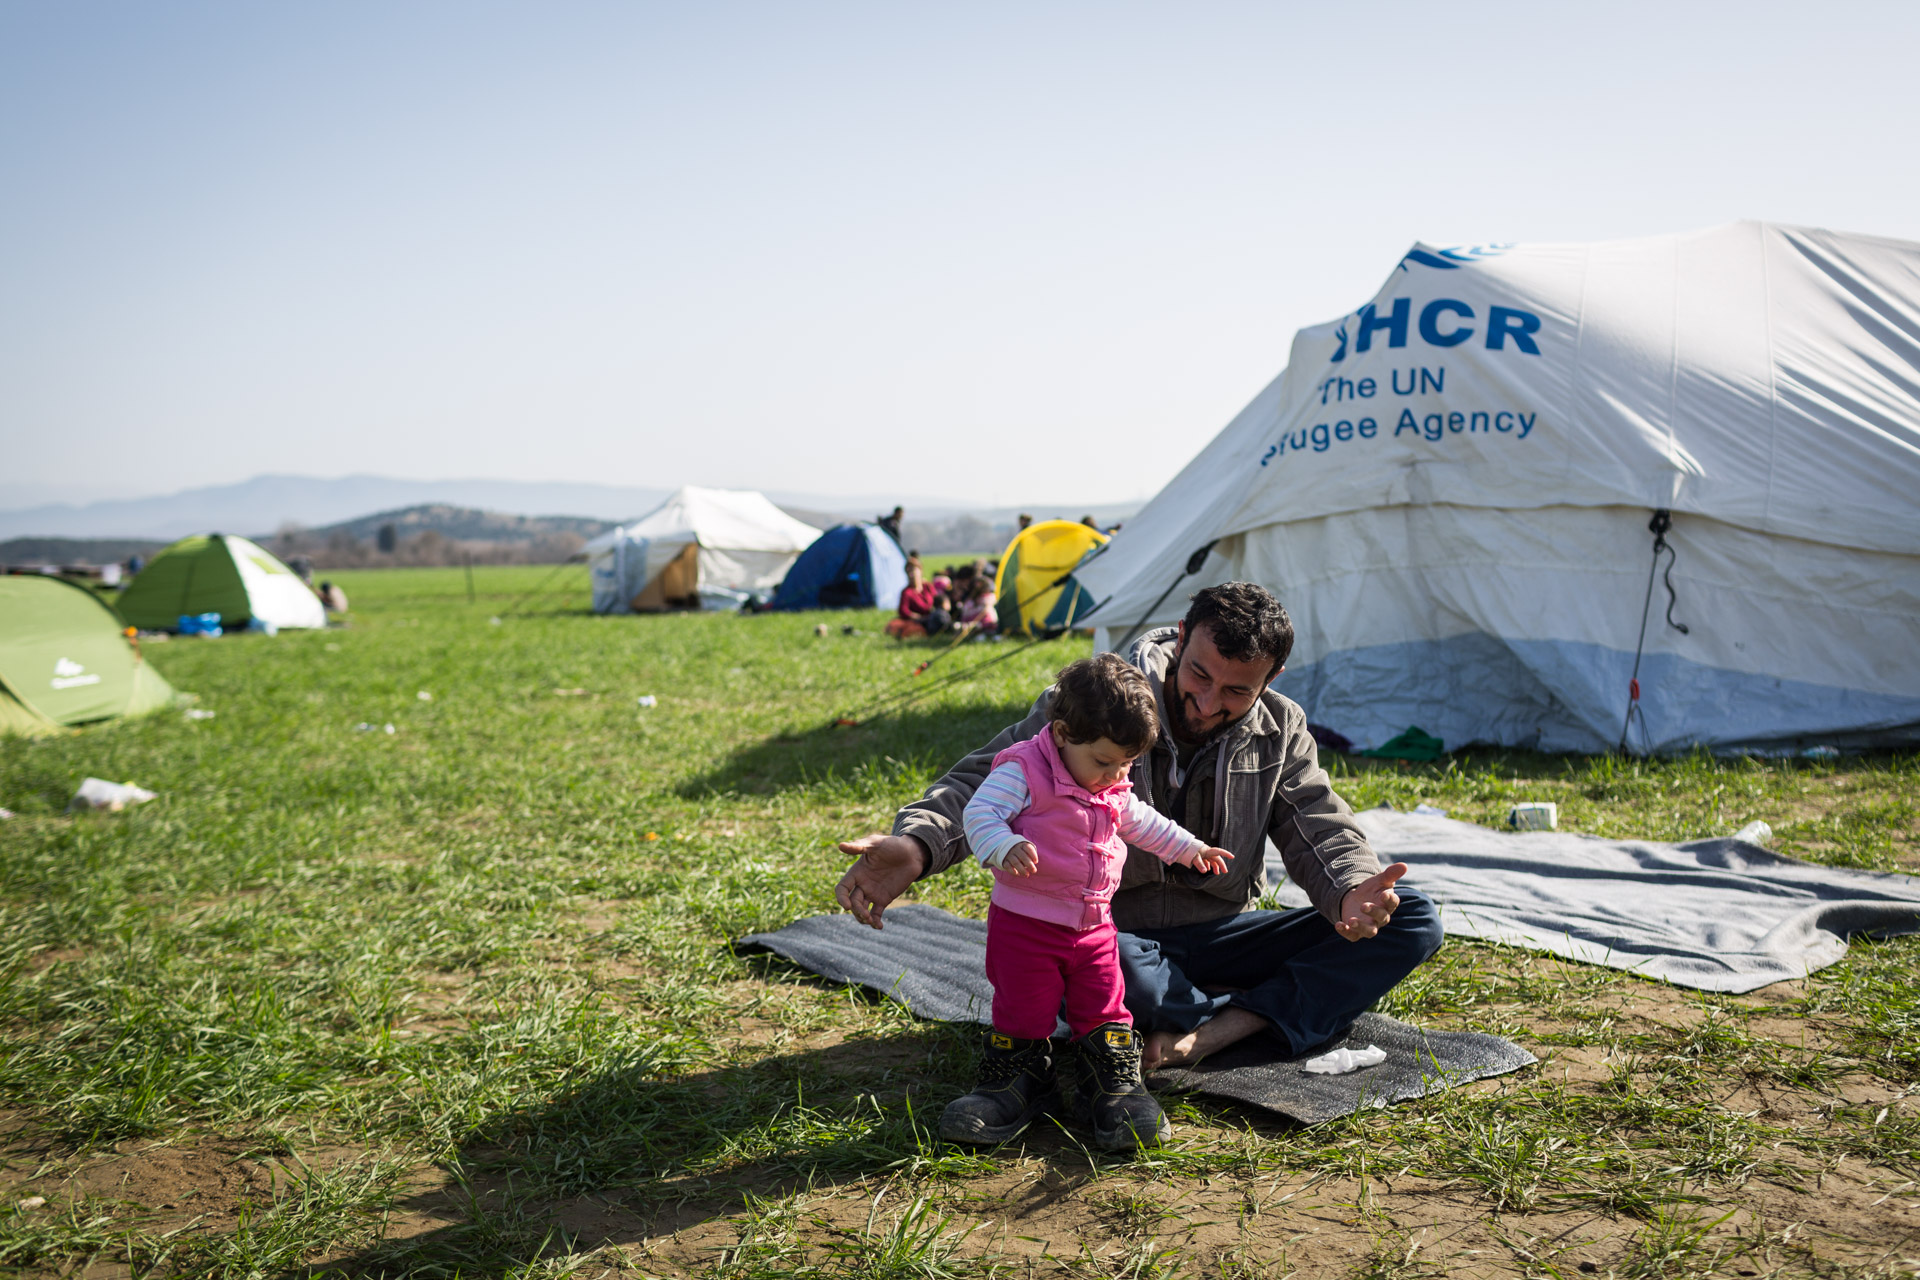 By the end of February, Idomeni was inhabited by maybe 2000 people. It was easy to find free space. Here, Basem puts Lilly in his big shoes. Basem used to work as an engineer in a substation in Syria. He came to Greece in the shoes he needed for work.